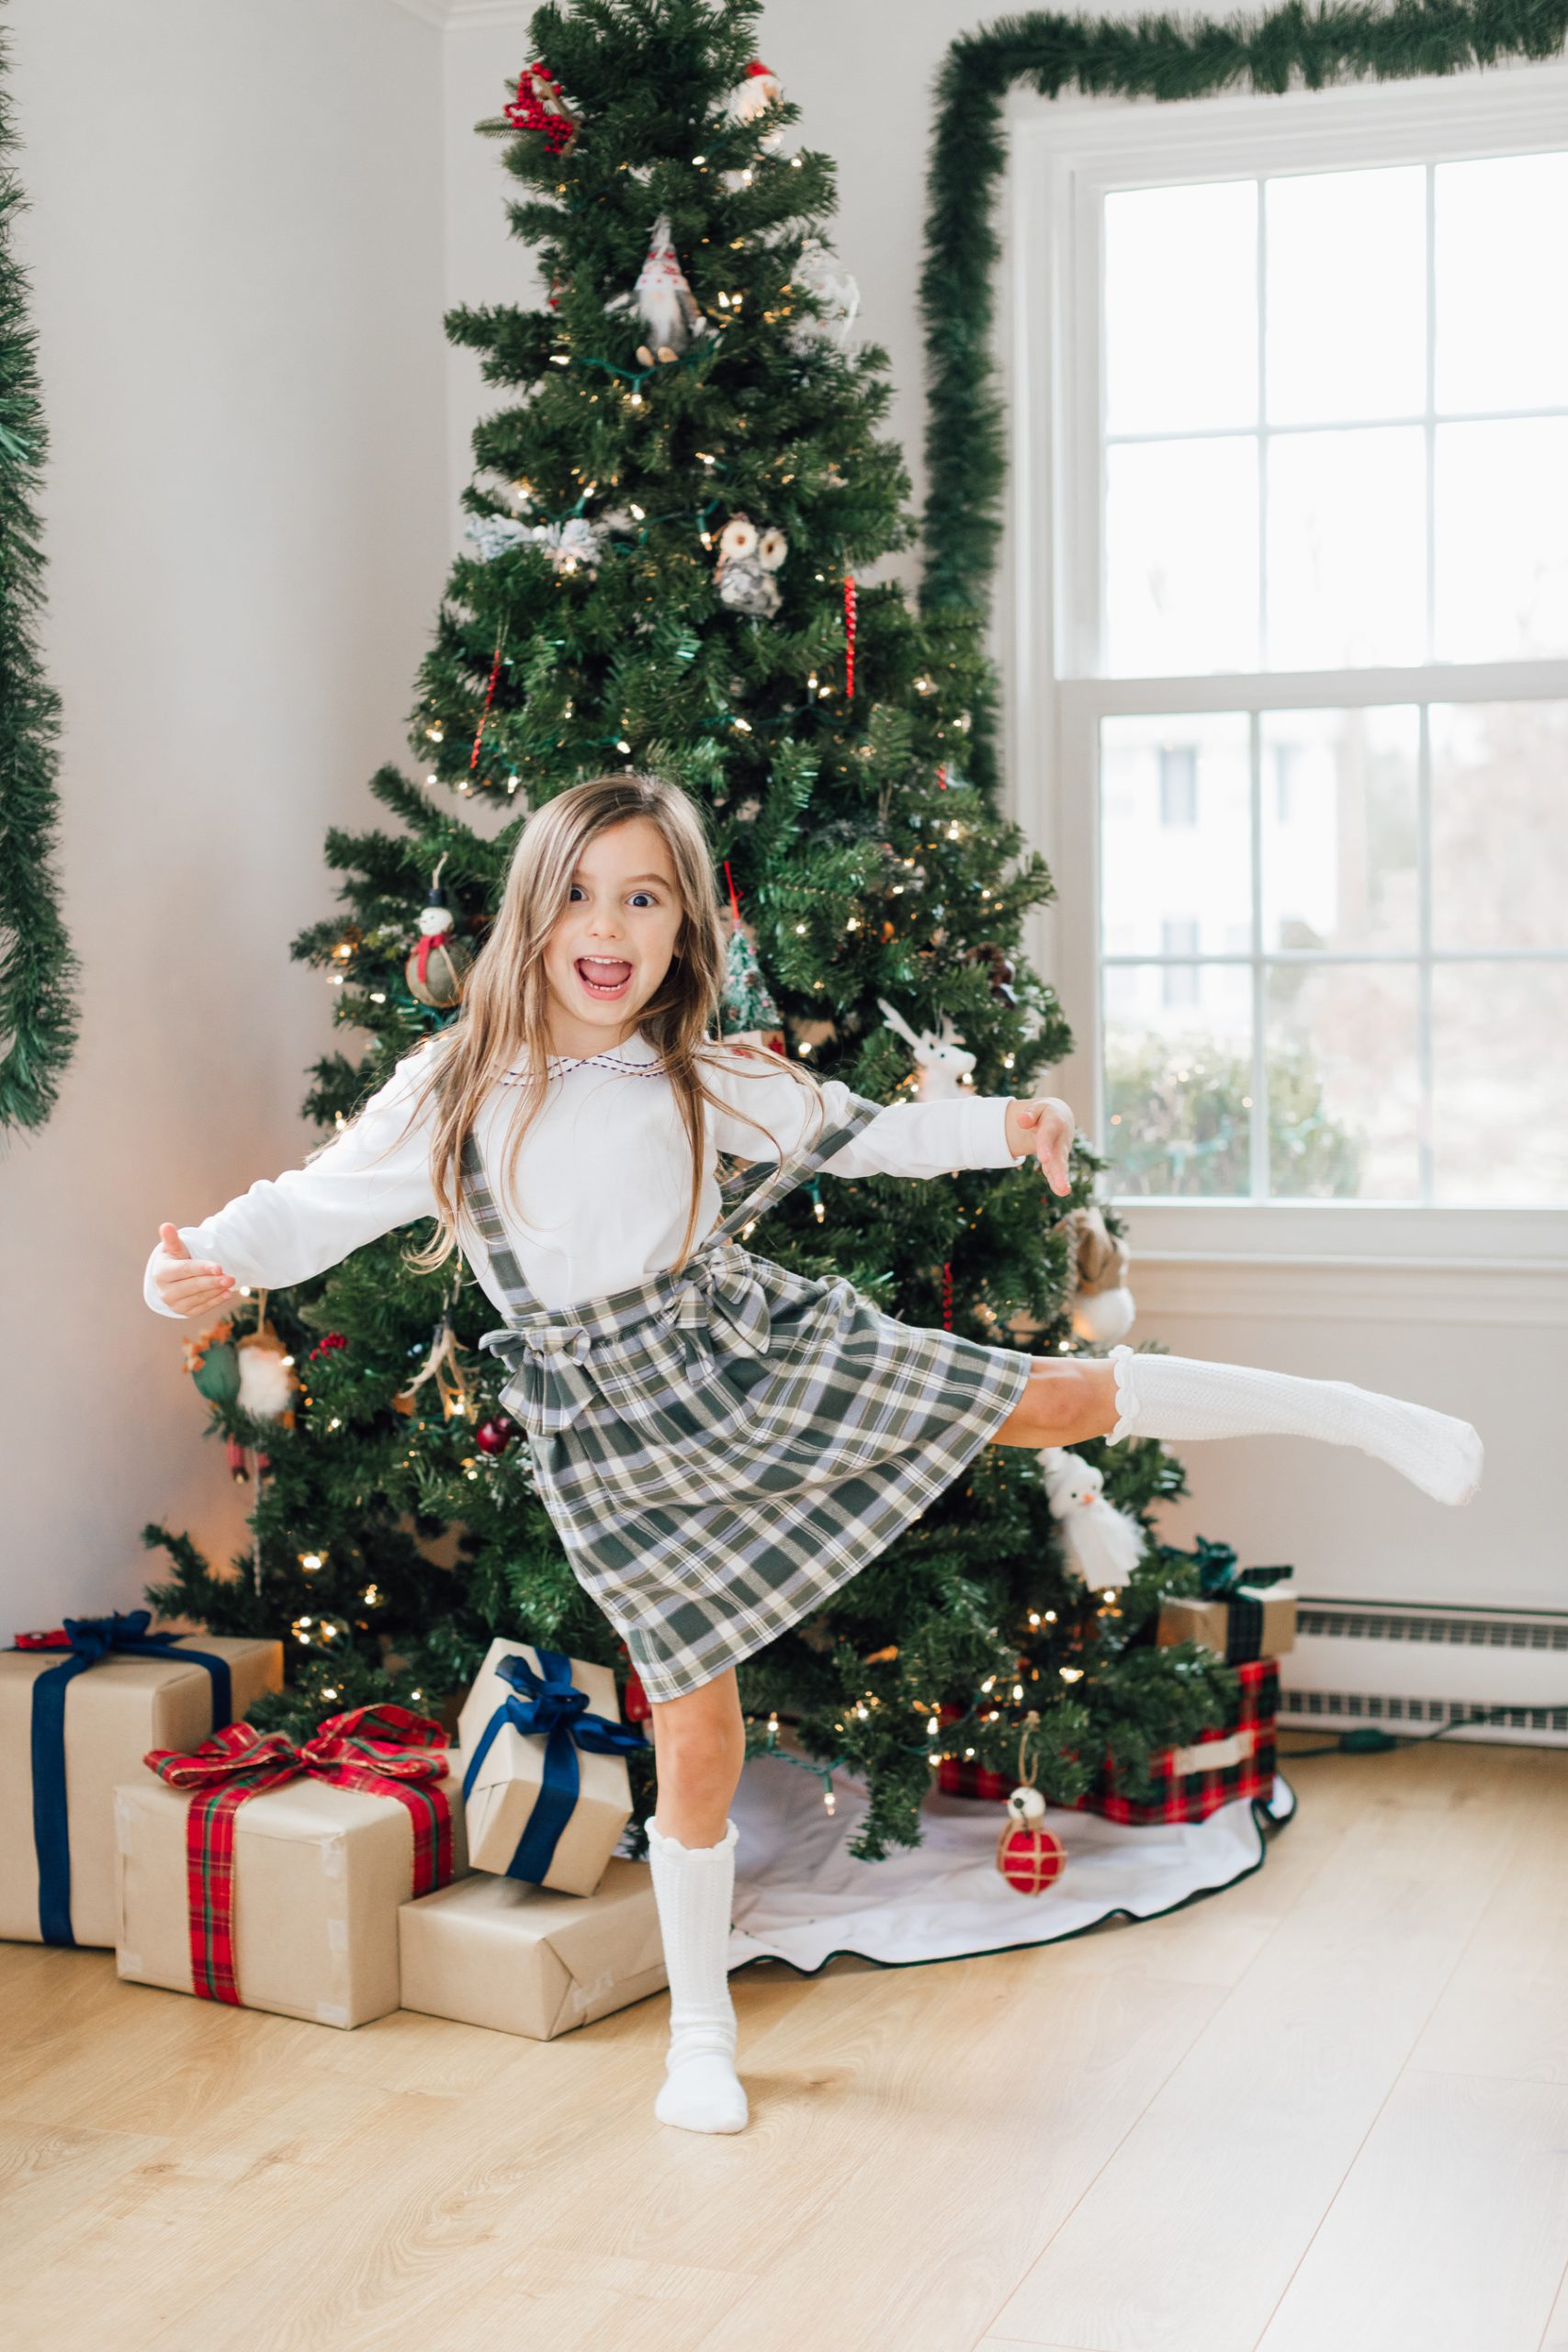 little girl in green plaid jumper making a silly face and doing a dance move